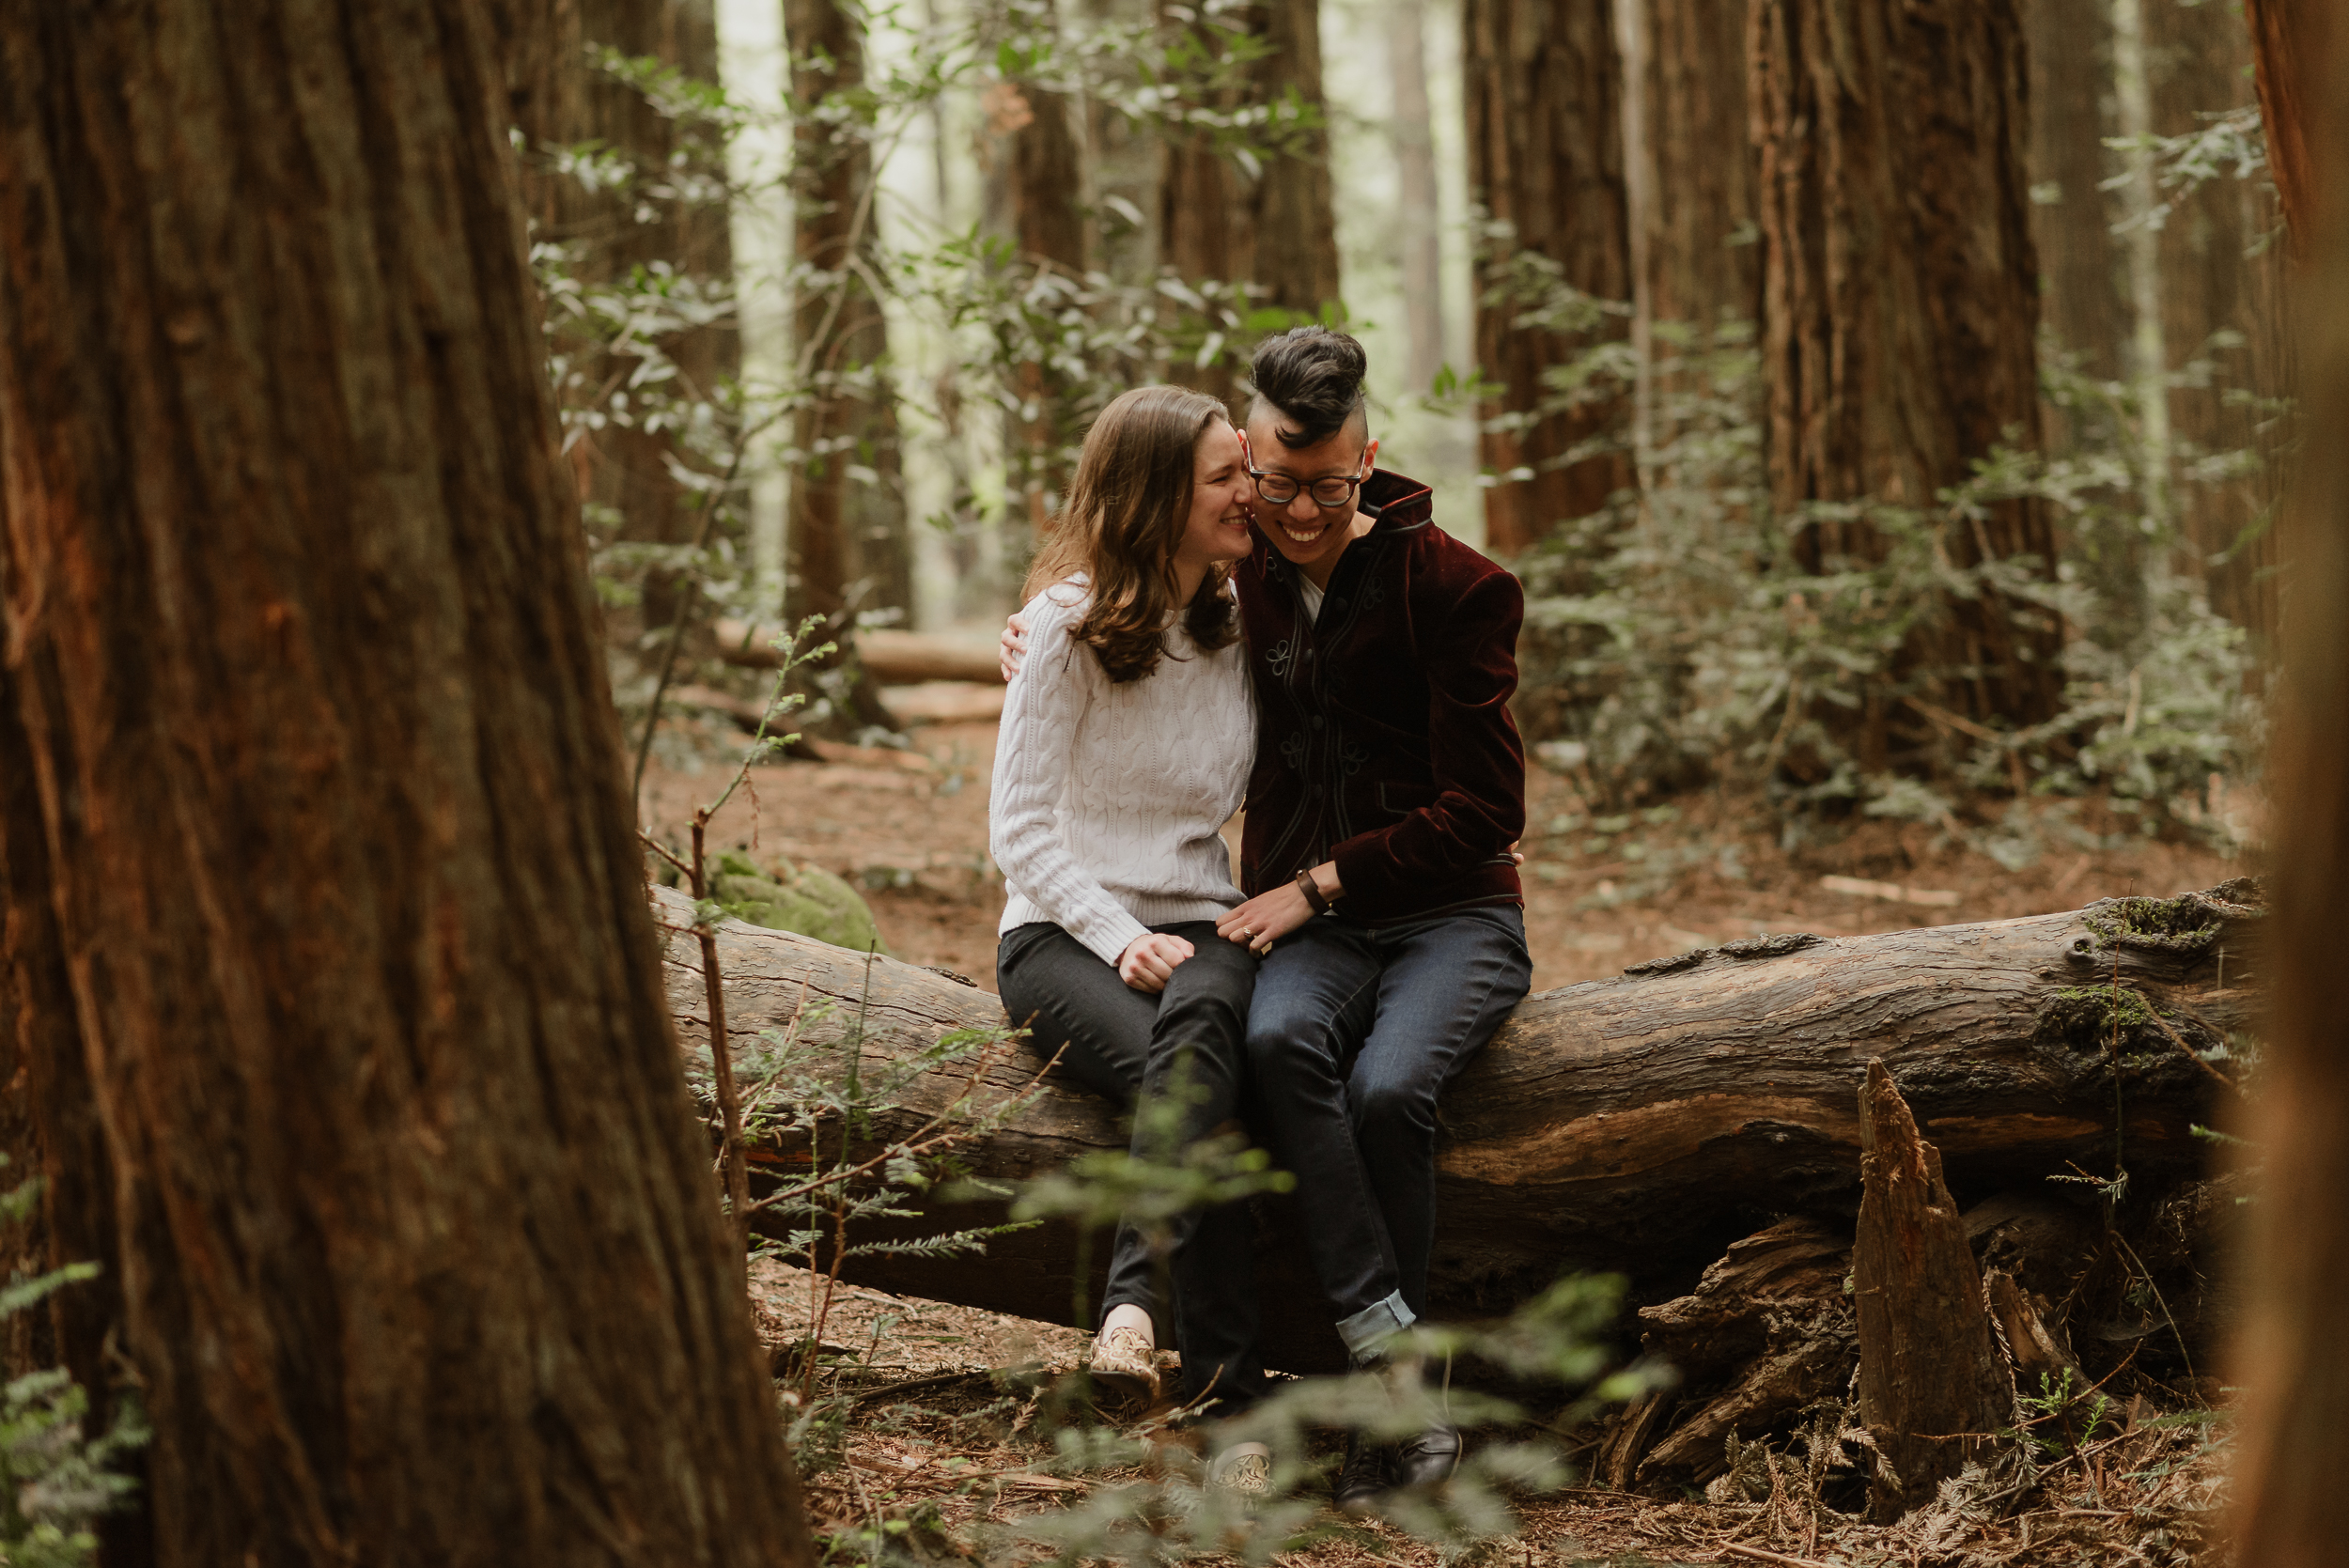 oakland-redwood-regional-park-engagement-session-vivianchen-045.jpg